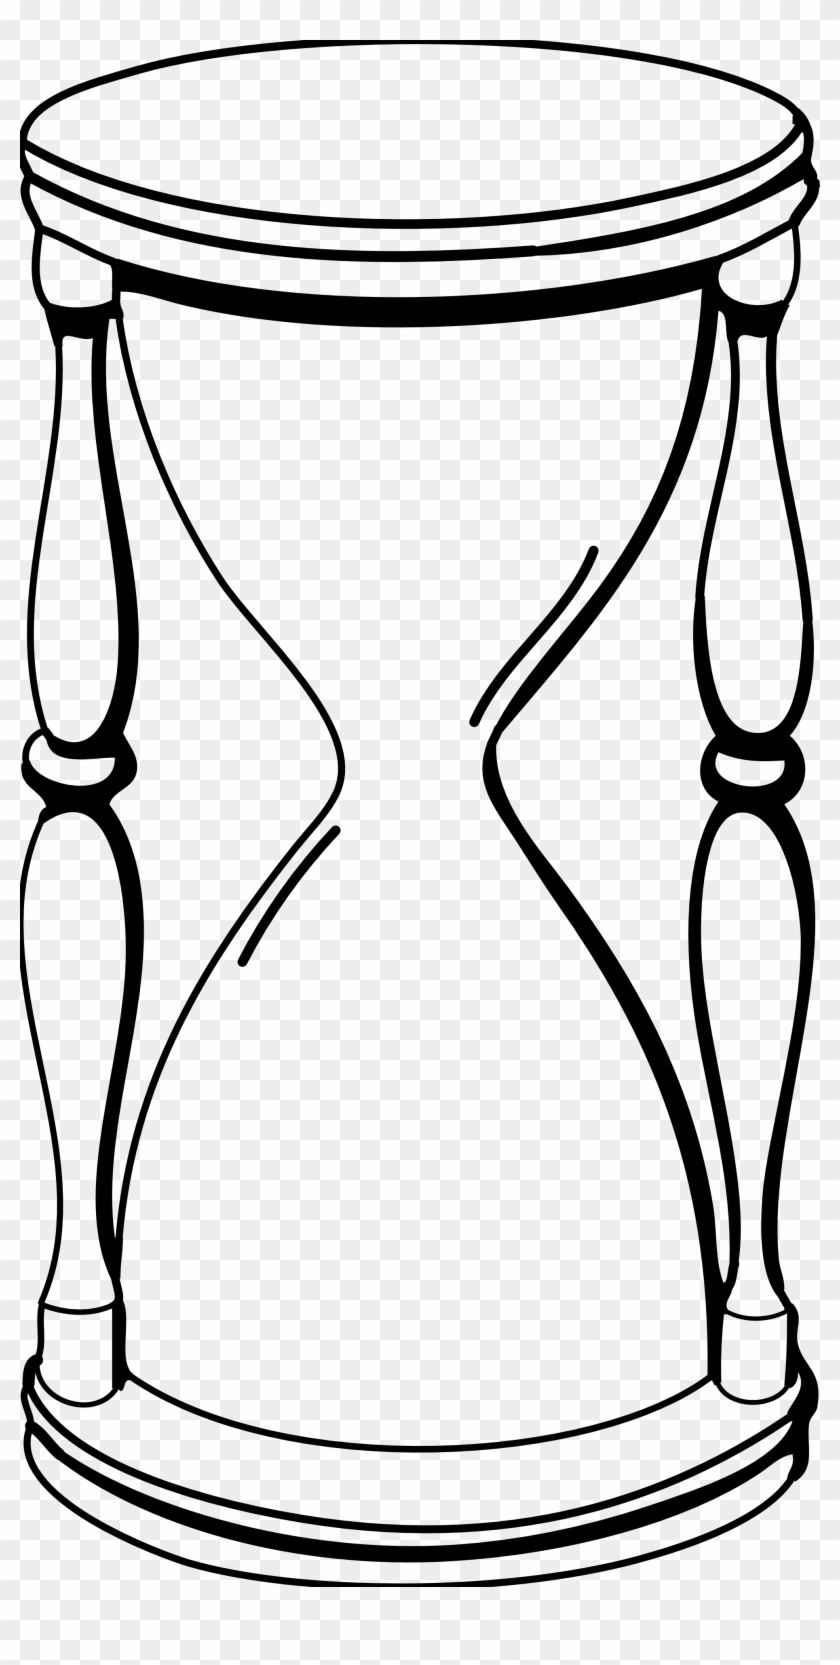 Clipart - Hour Glass Black And White #112504